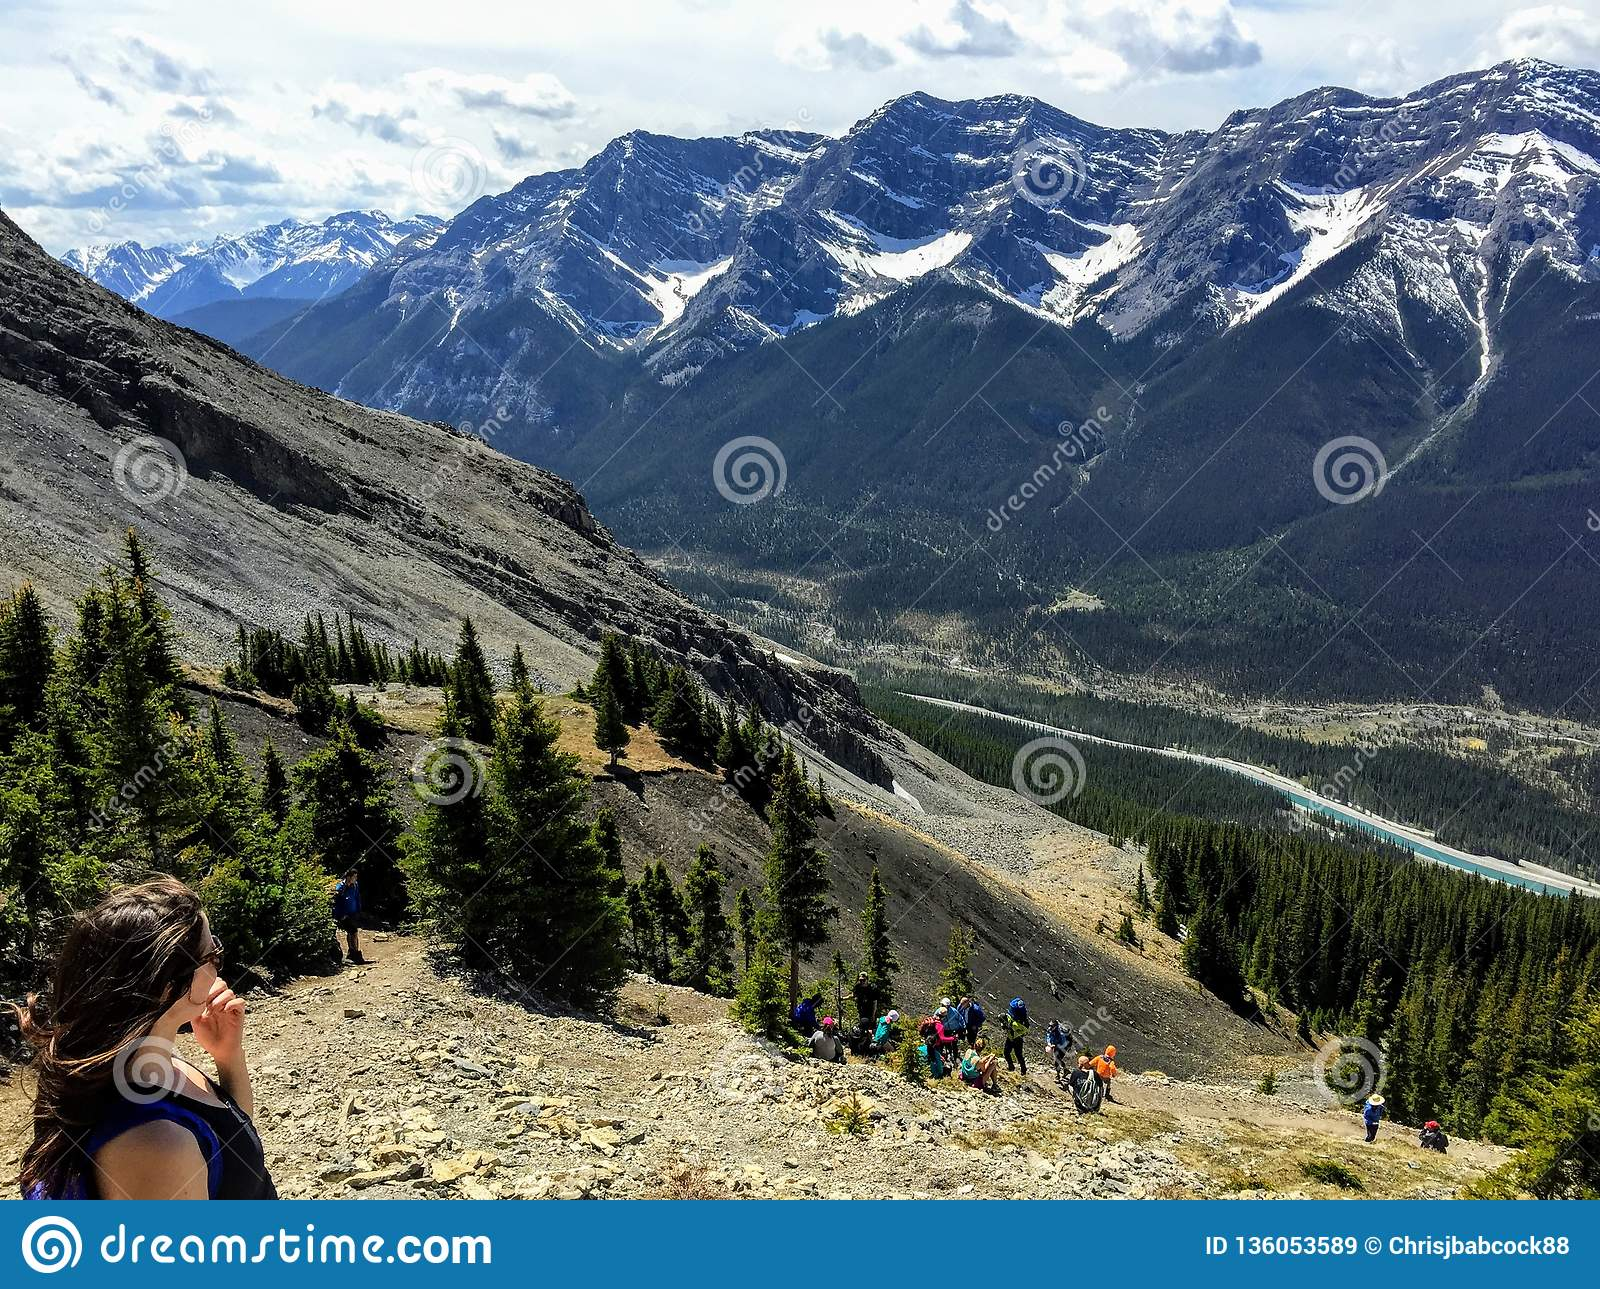 A young female hiker enjoying the view of the Rocky Mountains while hiking to the top of Ha Ling peak